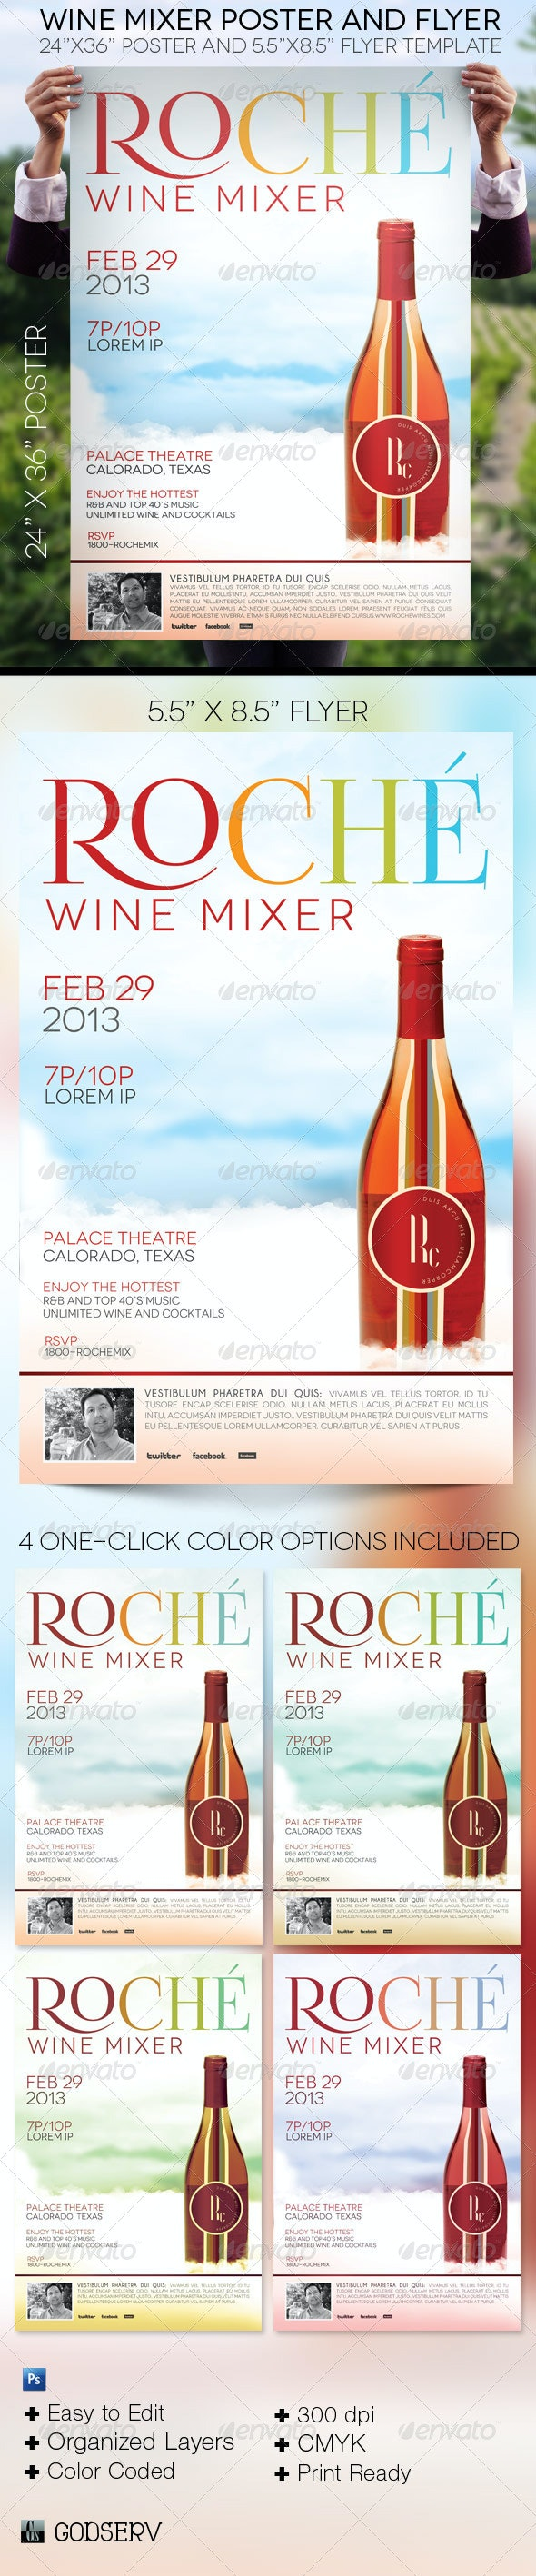 Wine Mixer Poster Flyer Template - Signage Print Templates